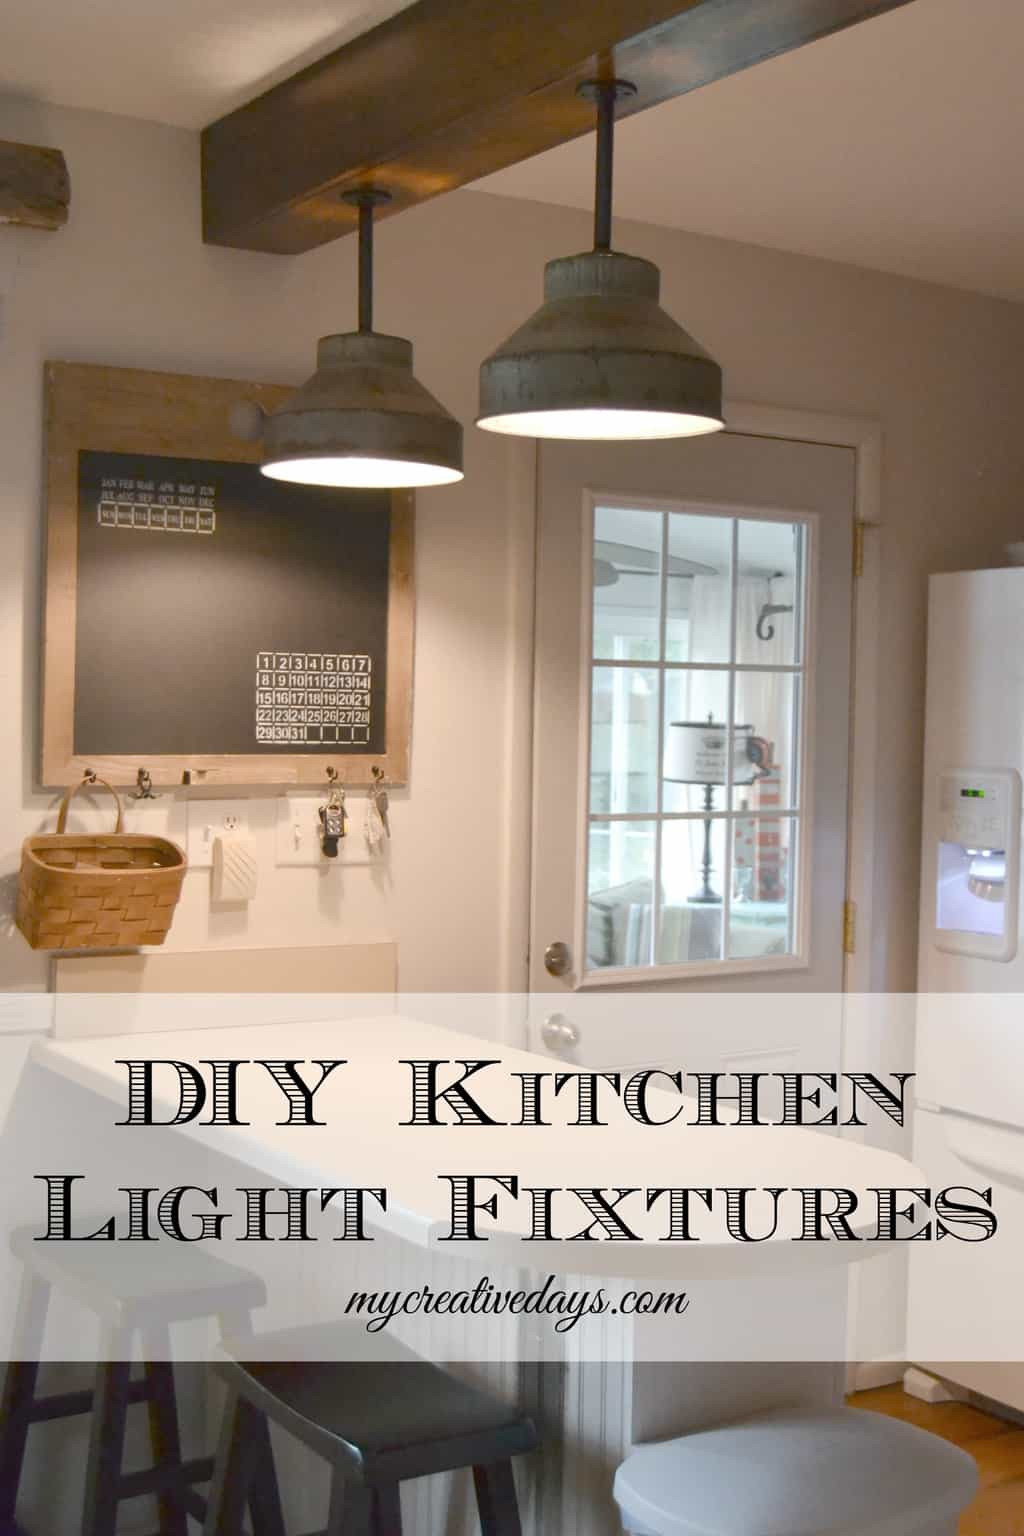 1950'S Kitchen Light Fixtures  DIY Kitchen Light Fixtures Part 2 My Creative Days